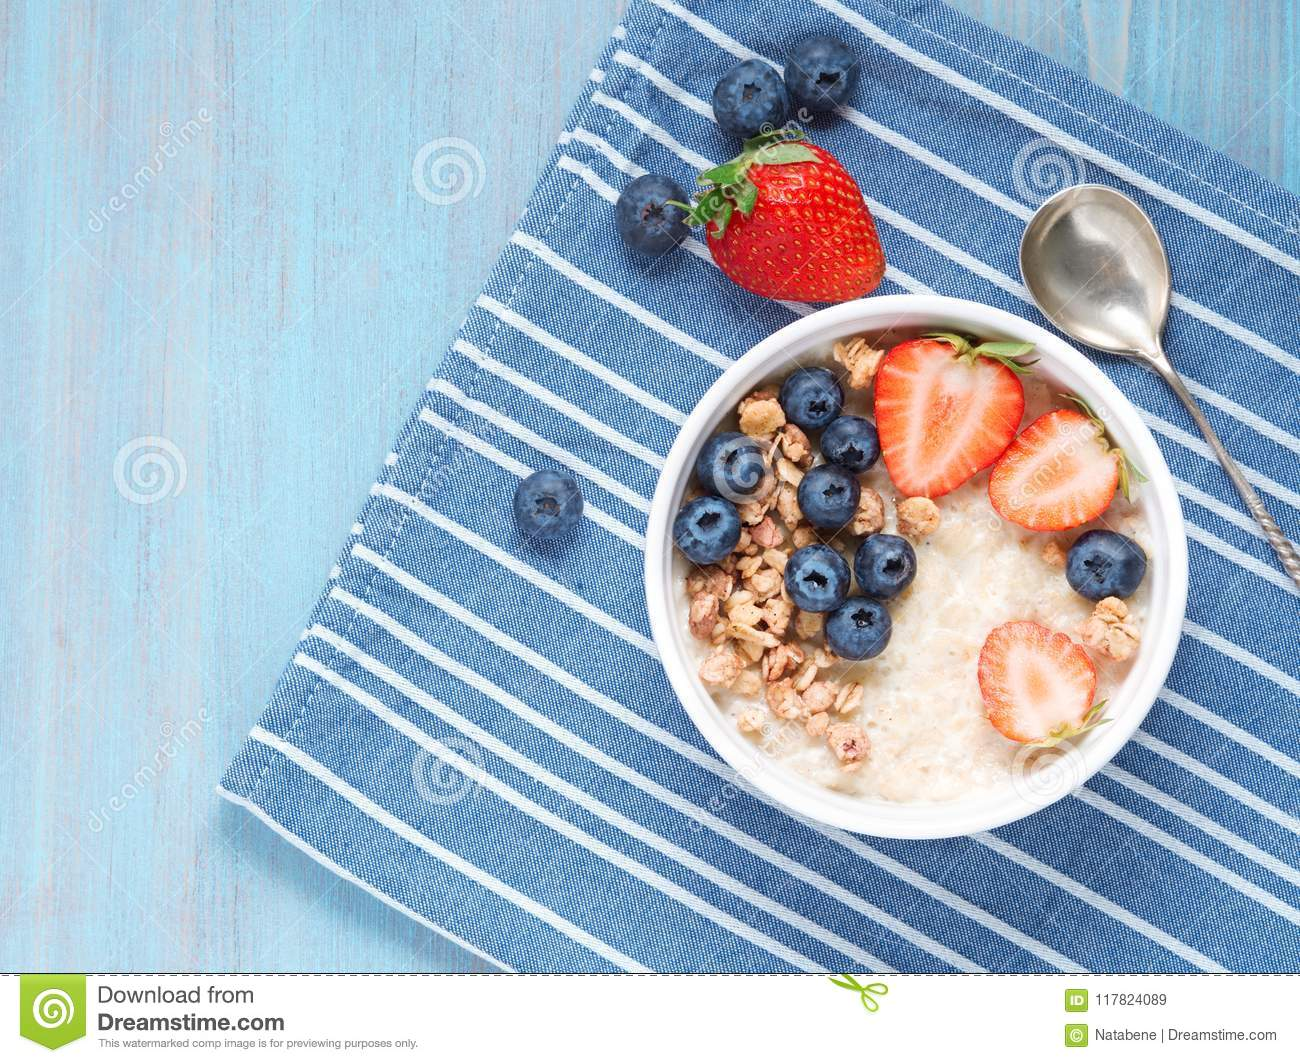 Oatmeal porridge with fresh strawberry, blueberry, granola on contrast blue background. Healthy breakfast. Top view.